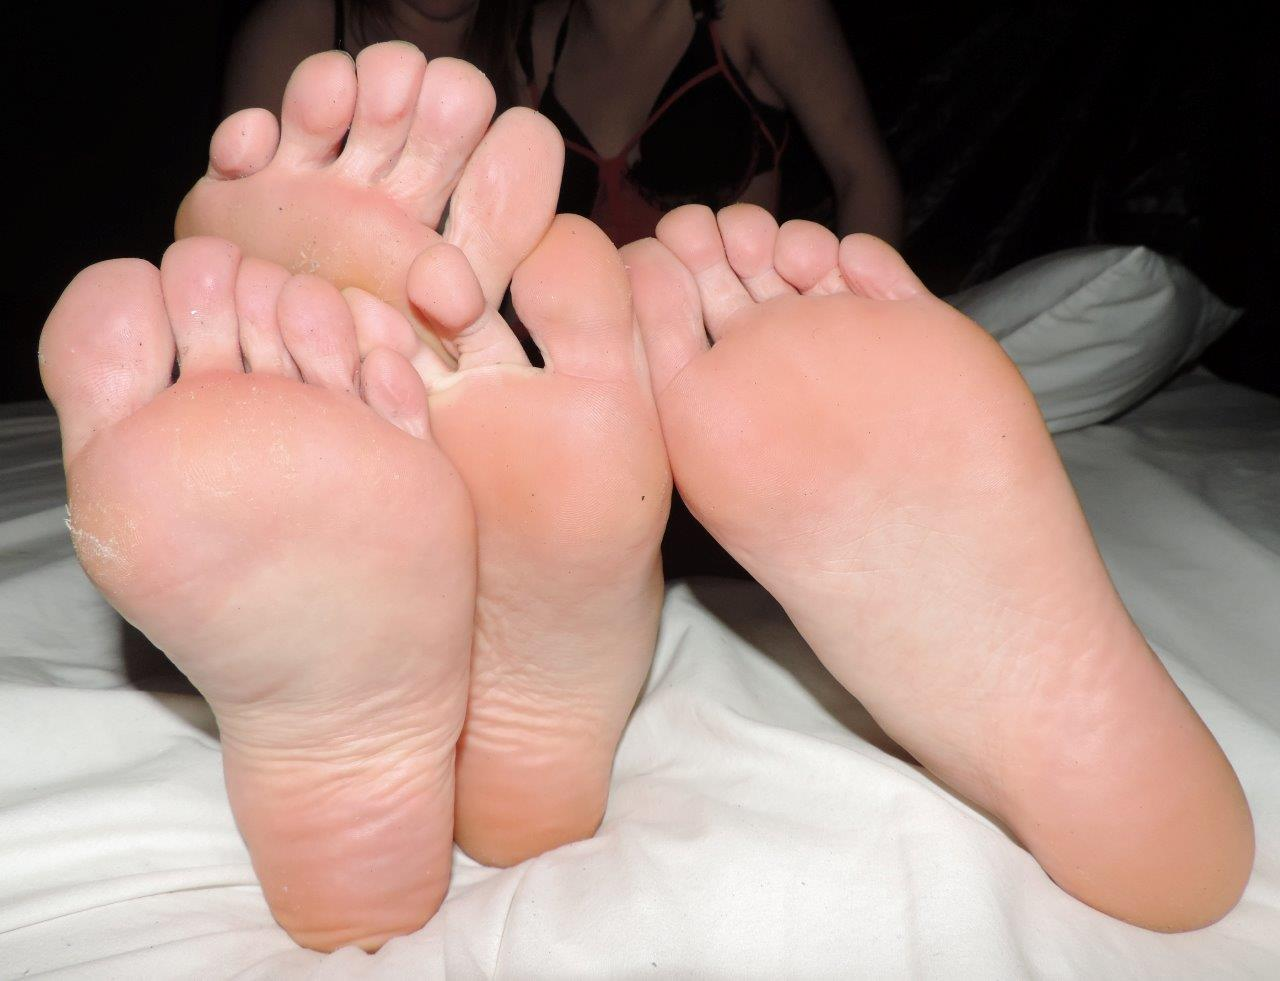 Lexi Size 6 and Kat Size 8 (10)